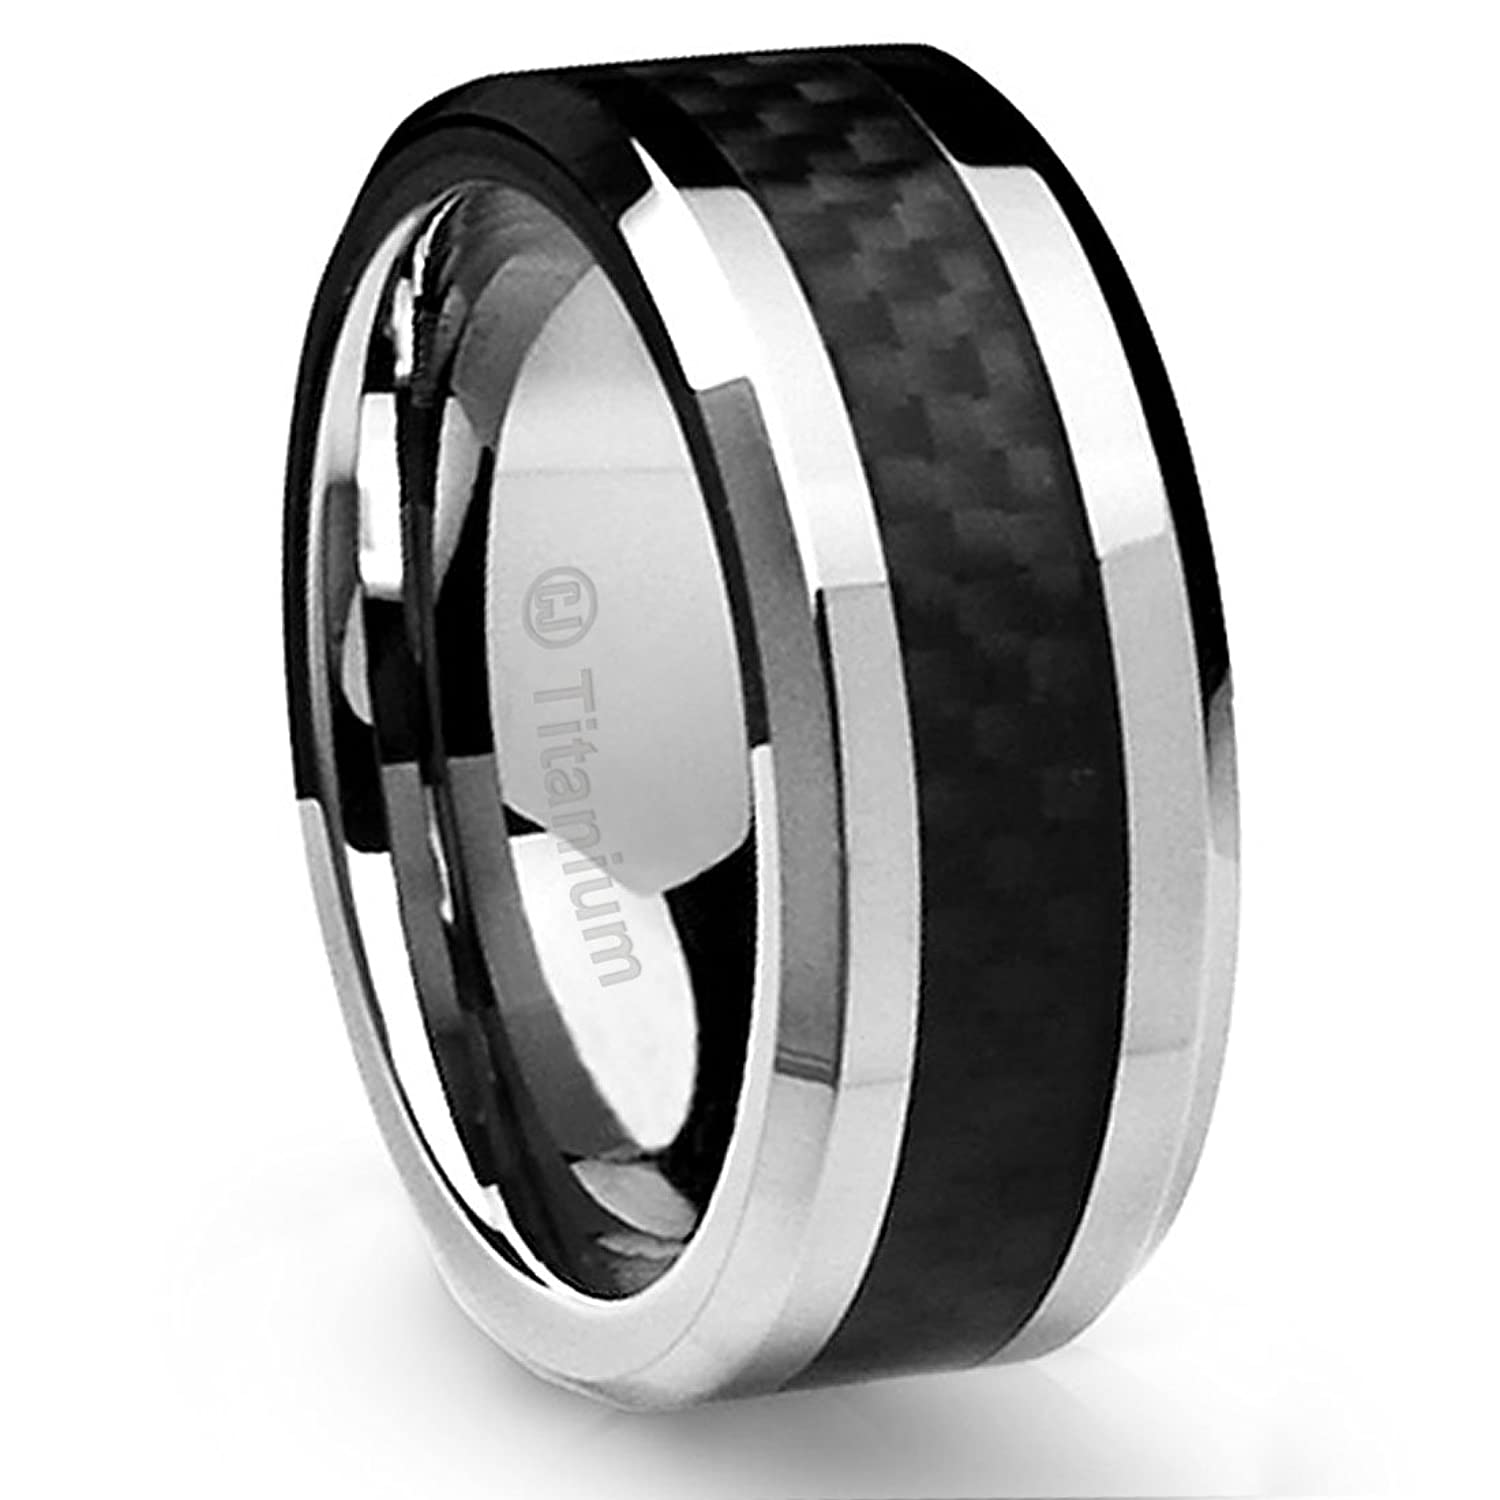 sale buy vs is best value danger a cons wedding images and ring metal stunning rings men band all pros for tungsten strength bands good titanium